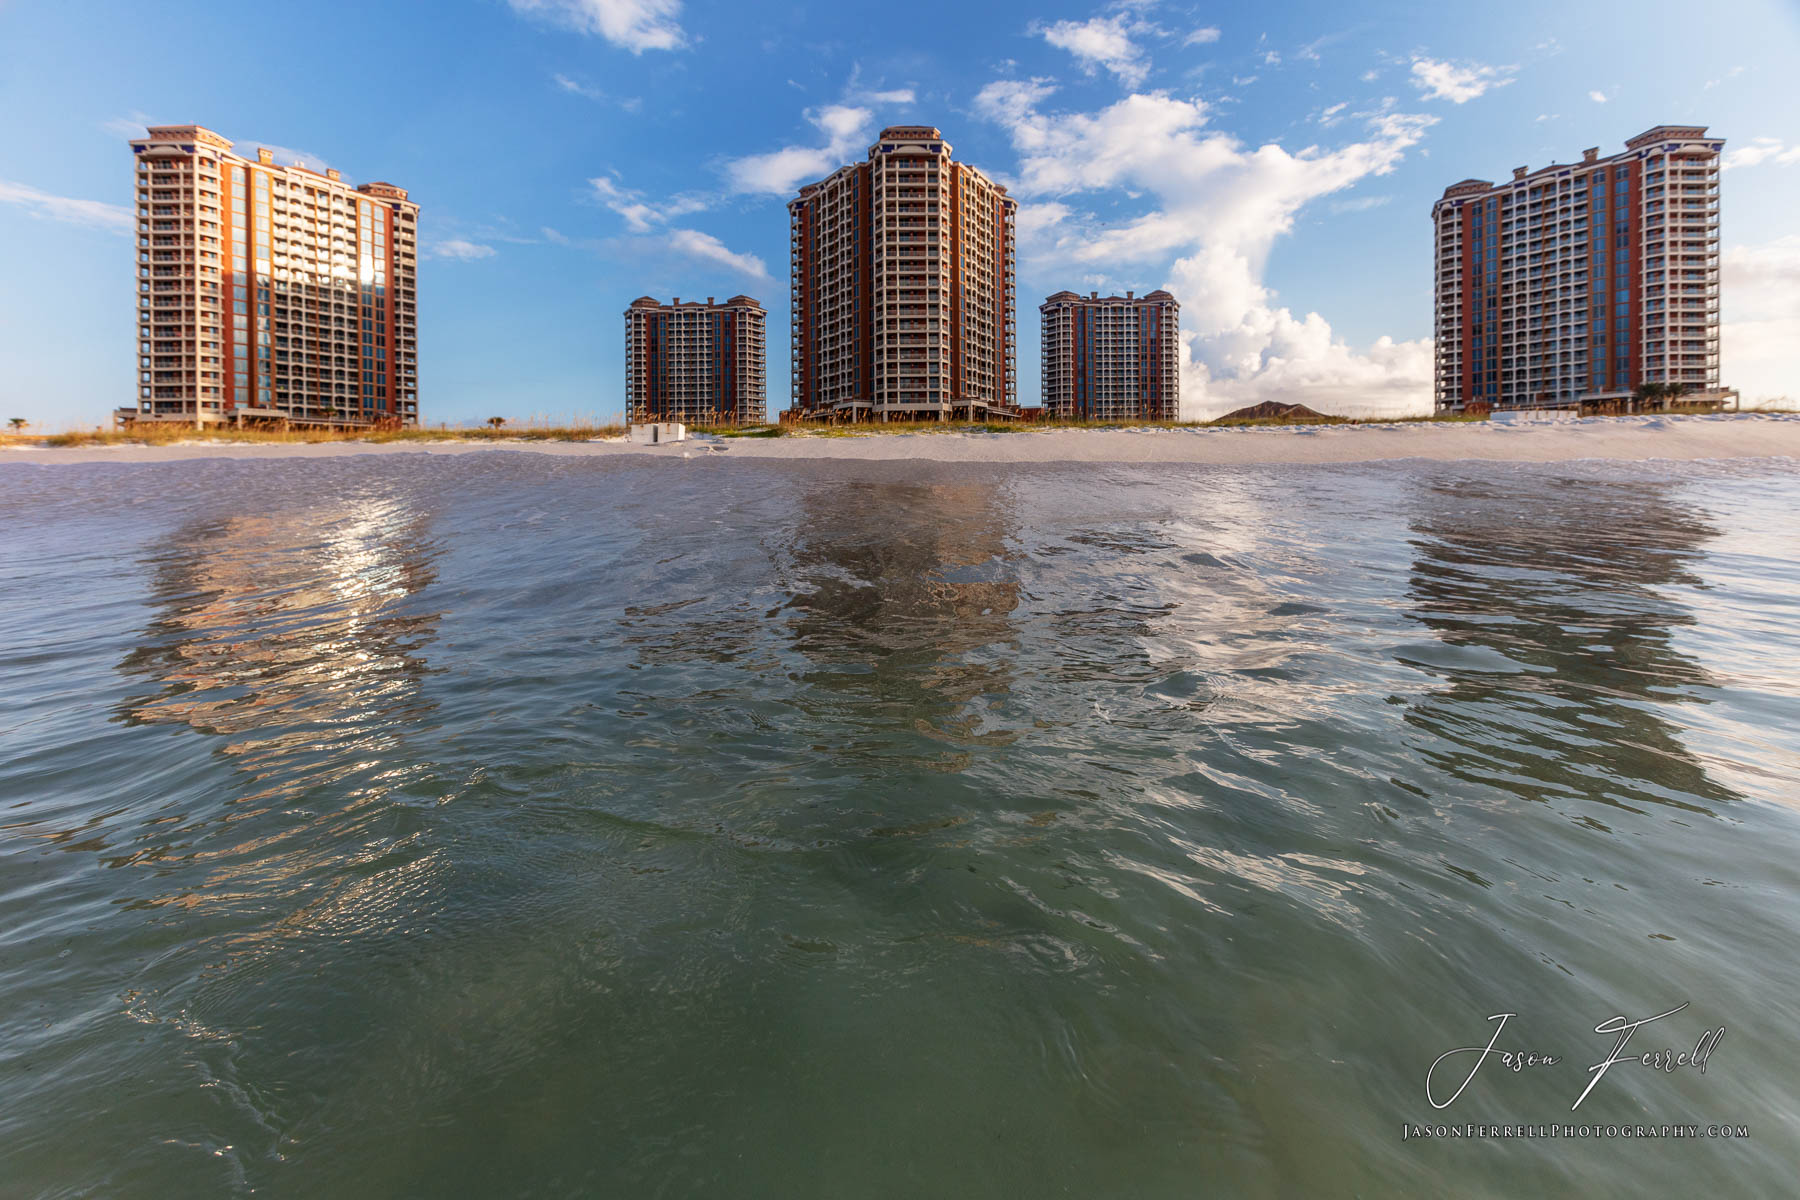 An early morning sunrise photo of the Portofino Island Resort Towers from the Gulf of Mexico.